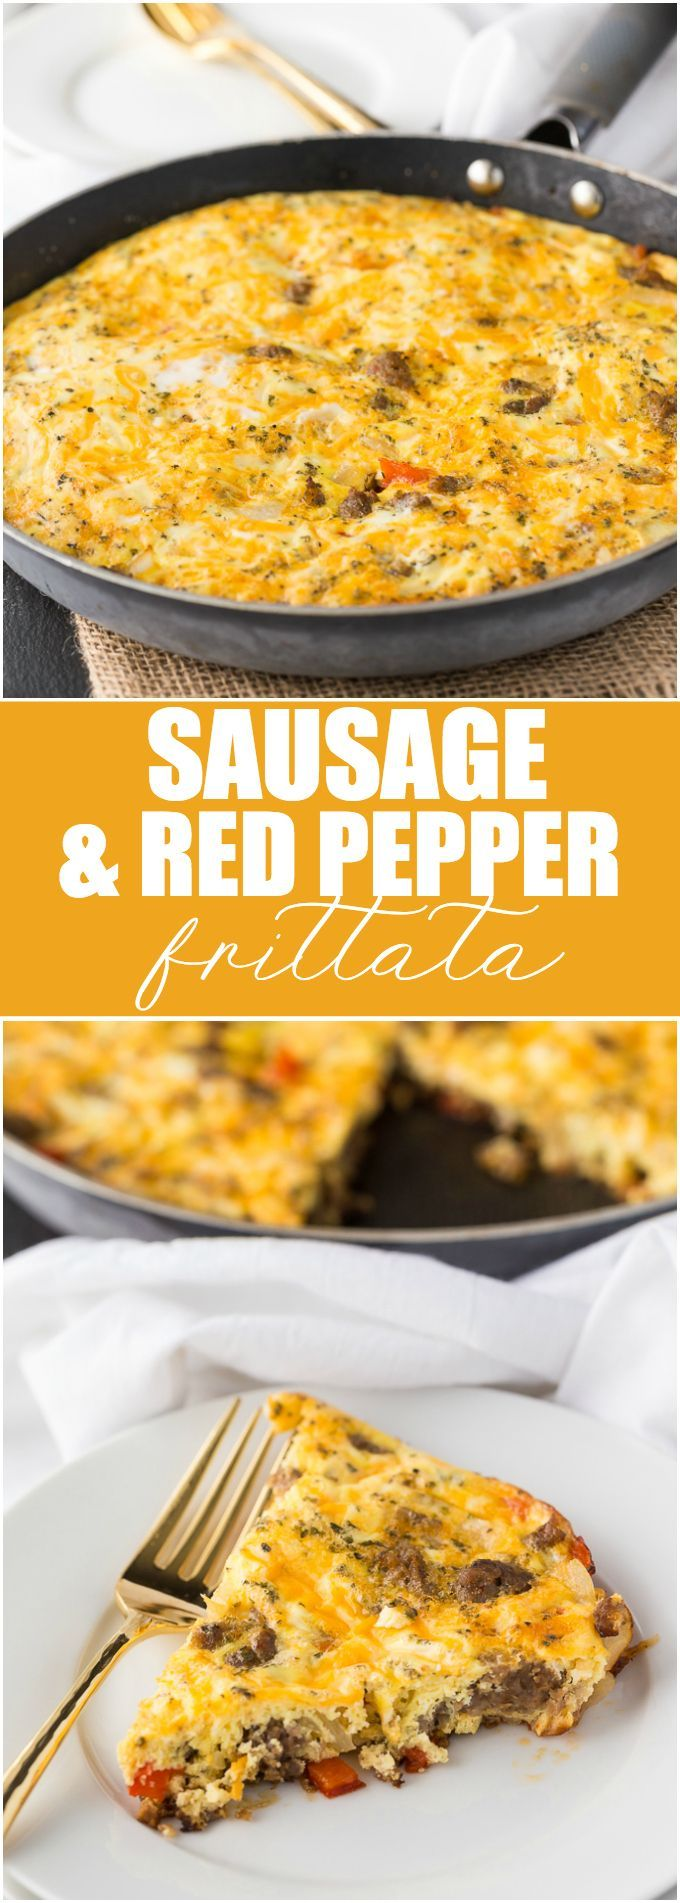 Sausage & Red Pepper Frittata - A hearty and filling low carb brunch recipe!